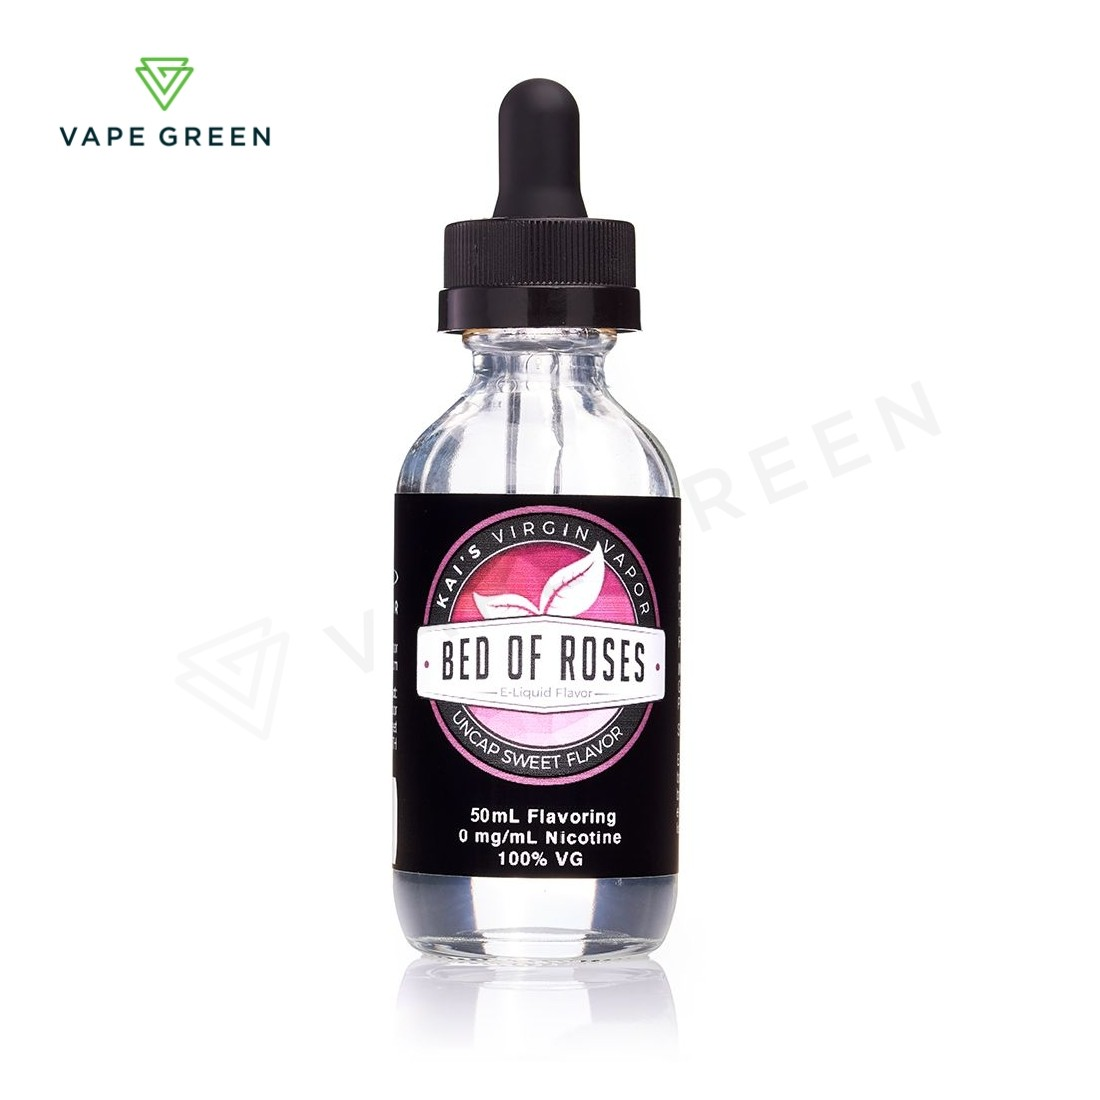 Bed of Roses E-Liquid by Kai's Virgin Vapor 50ml Shortfill